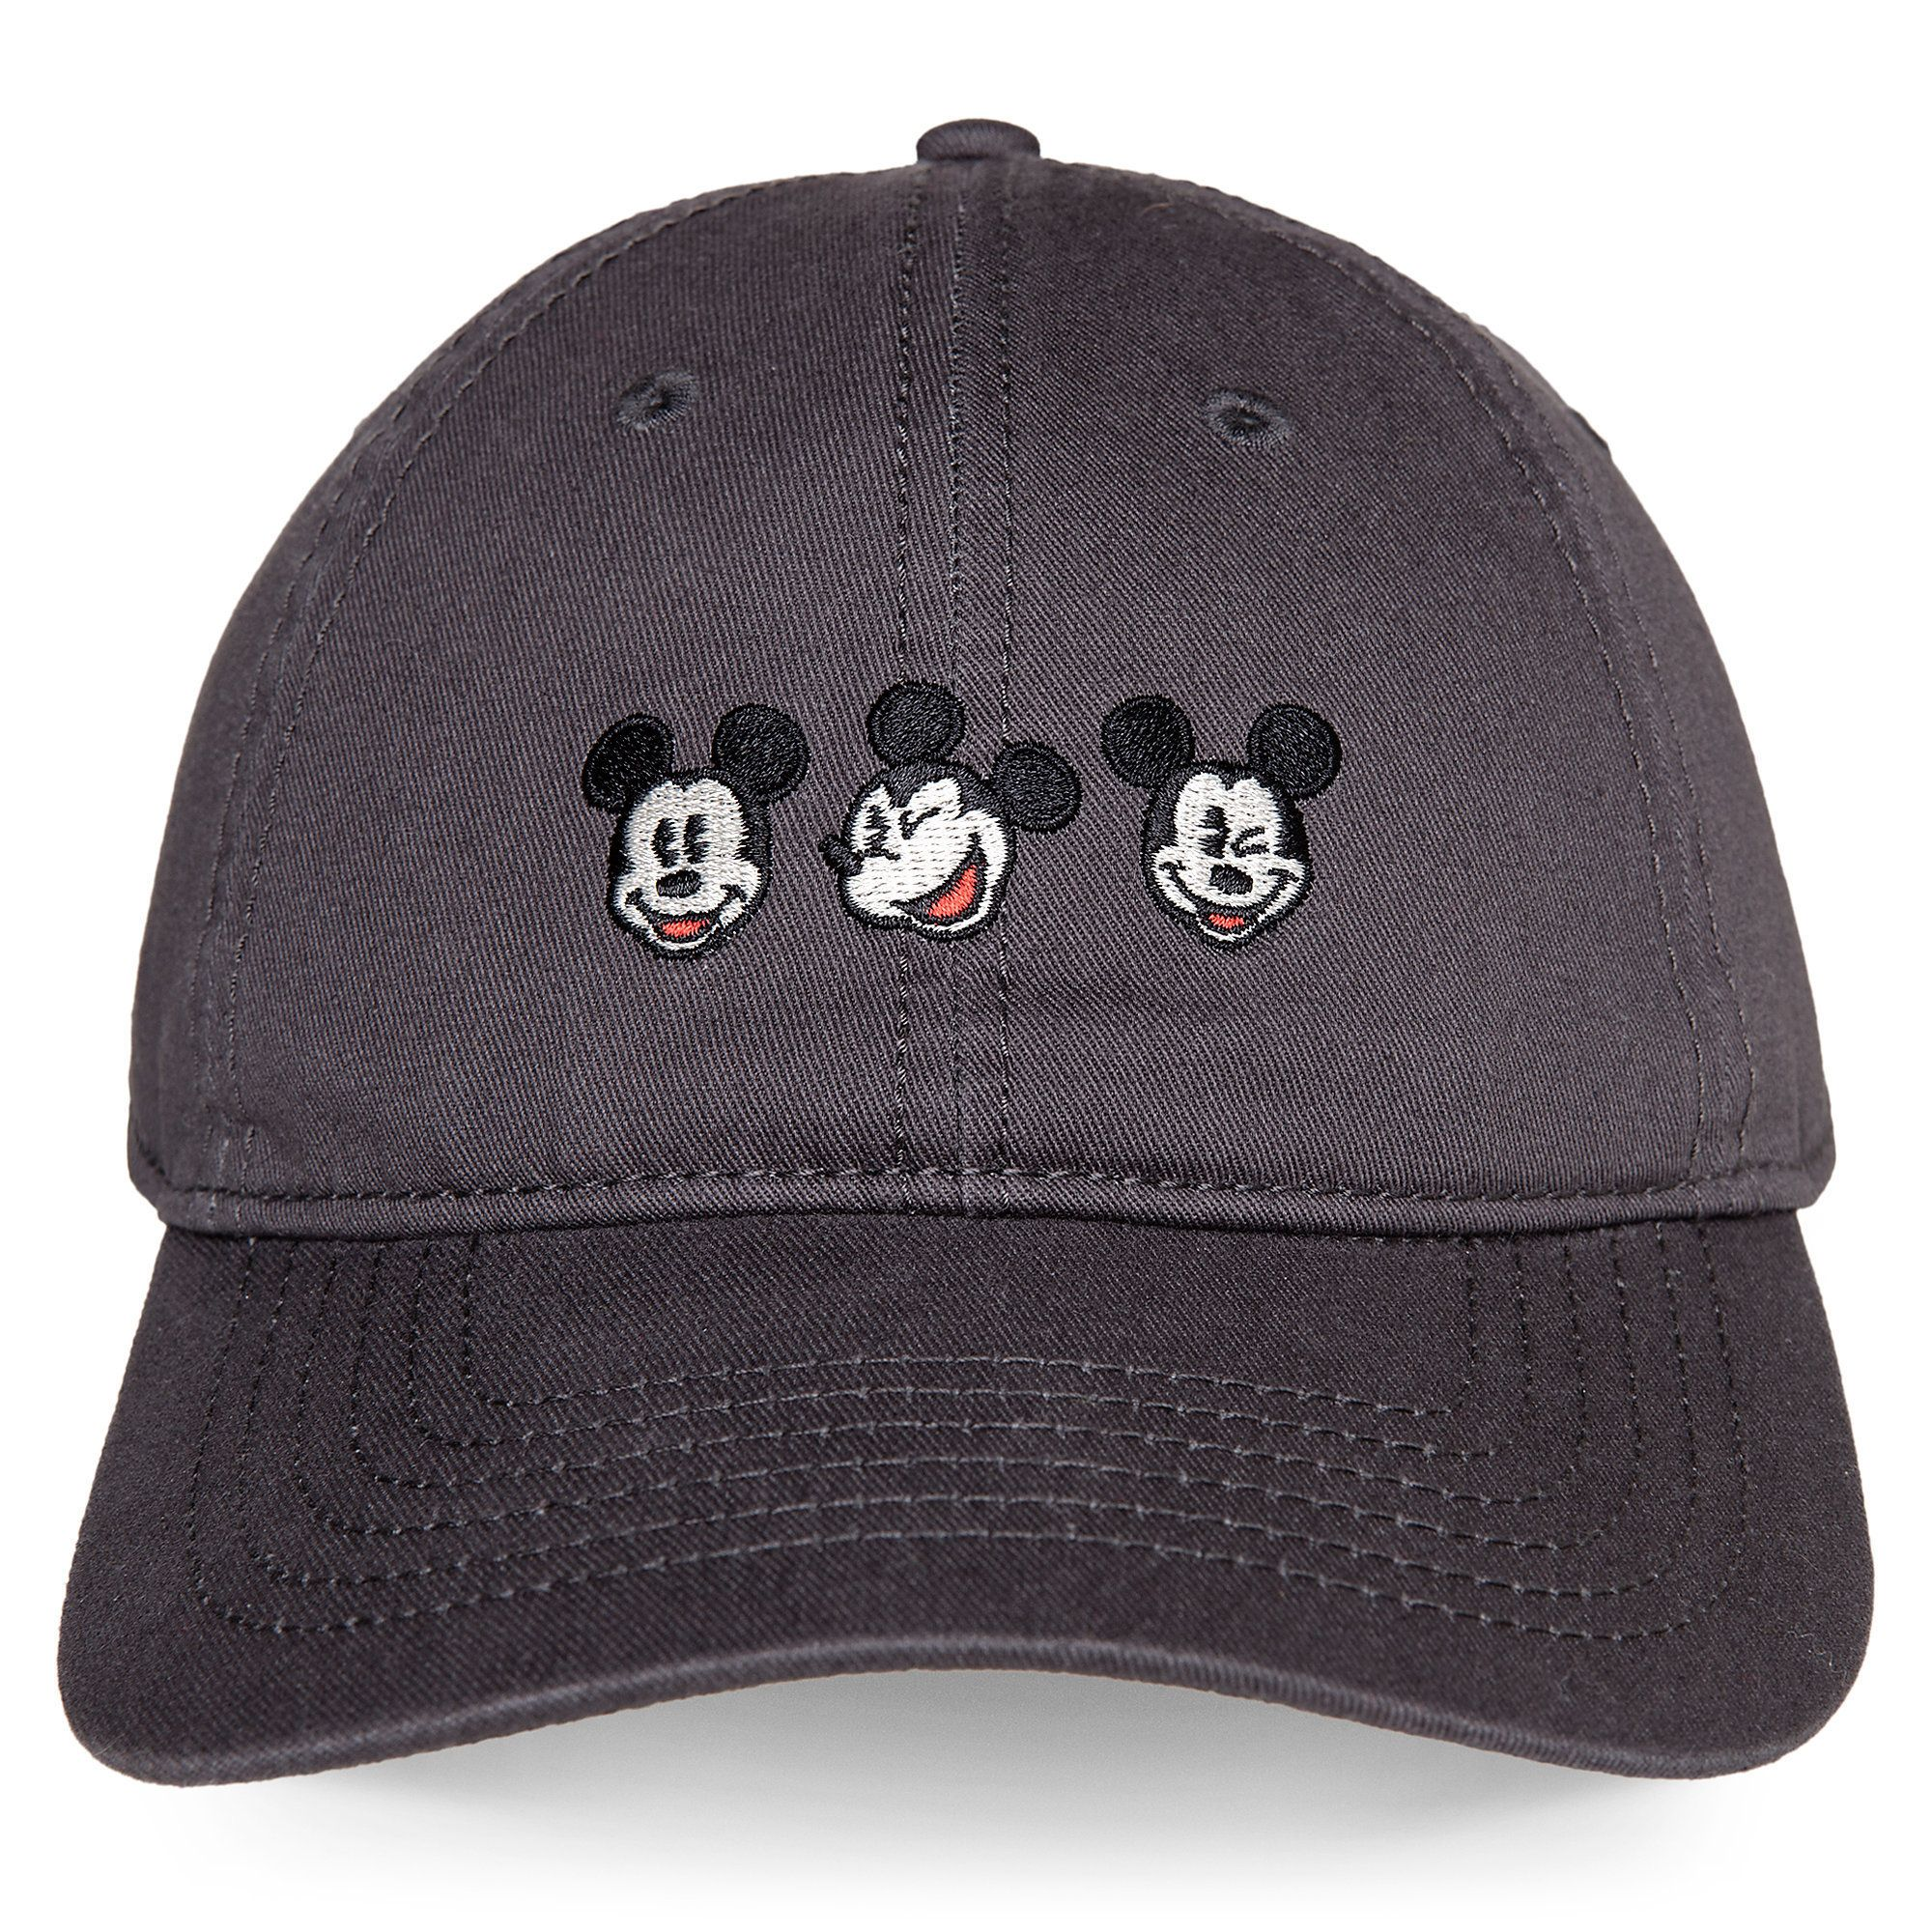 Mickey Mouse Embroidered Baseball Cap for Adults  e213e8d1f85